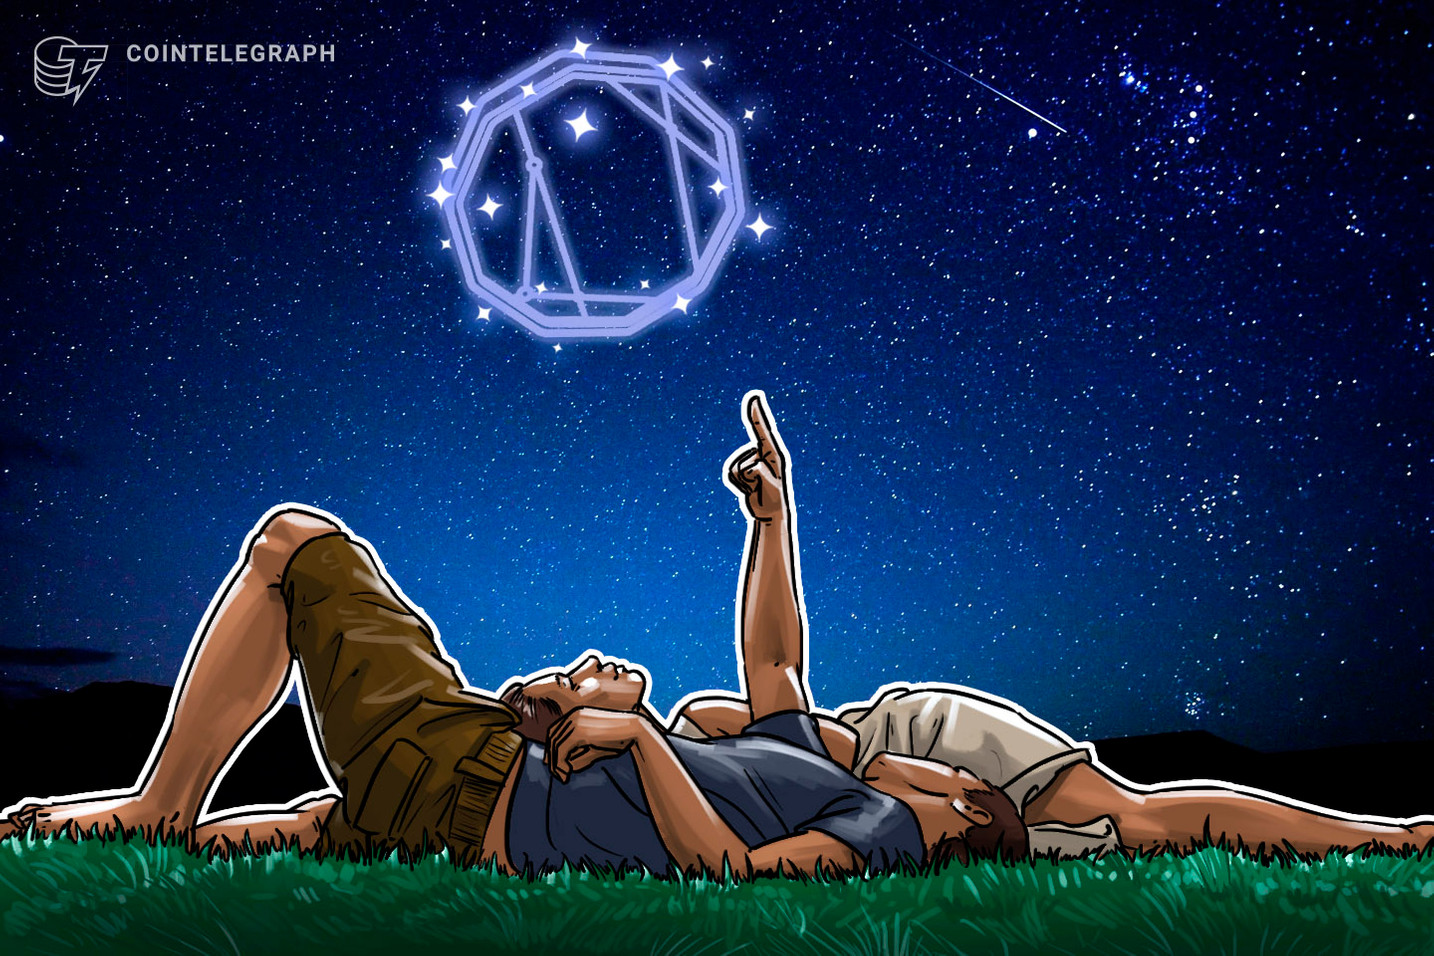 Blockchain Project Aims to Apportion and Tokenize the Moon